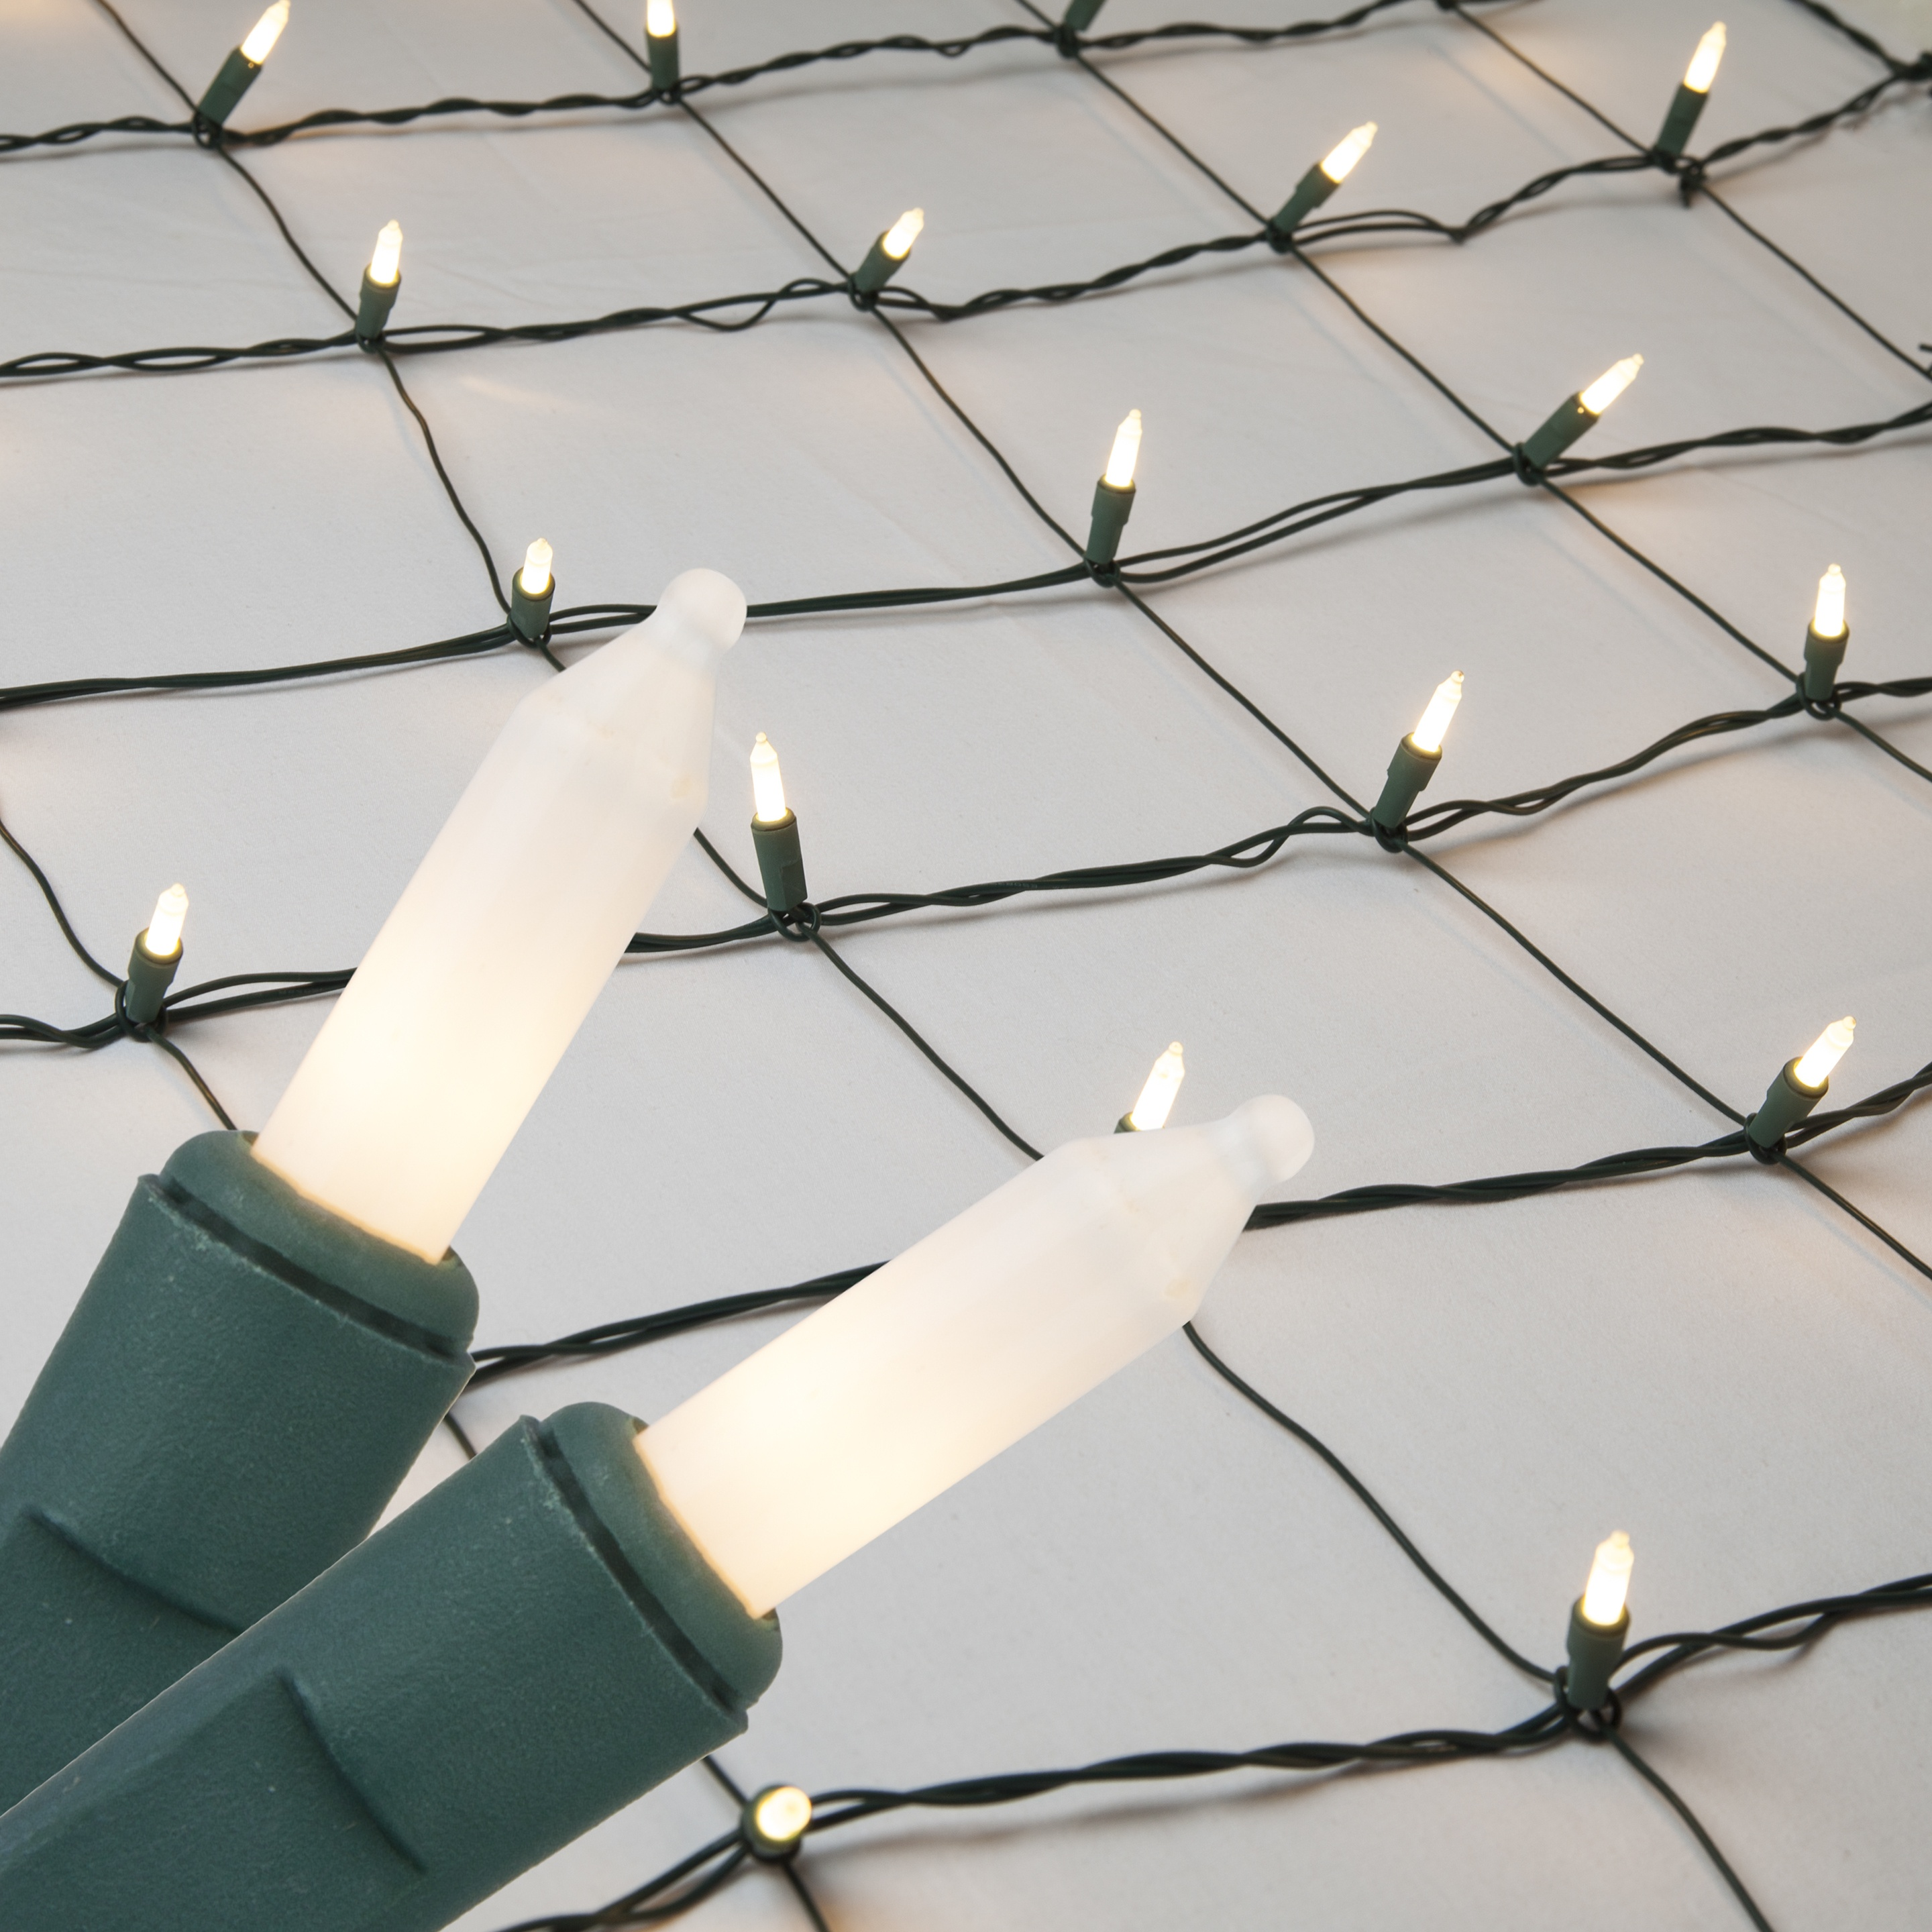 christmas net lights 4 x 6 net lights 150 frosted white lamps green wire